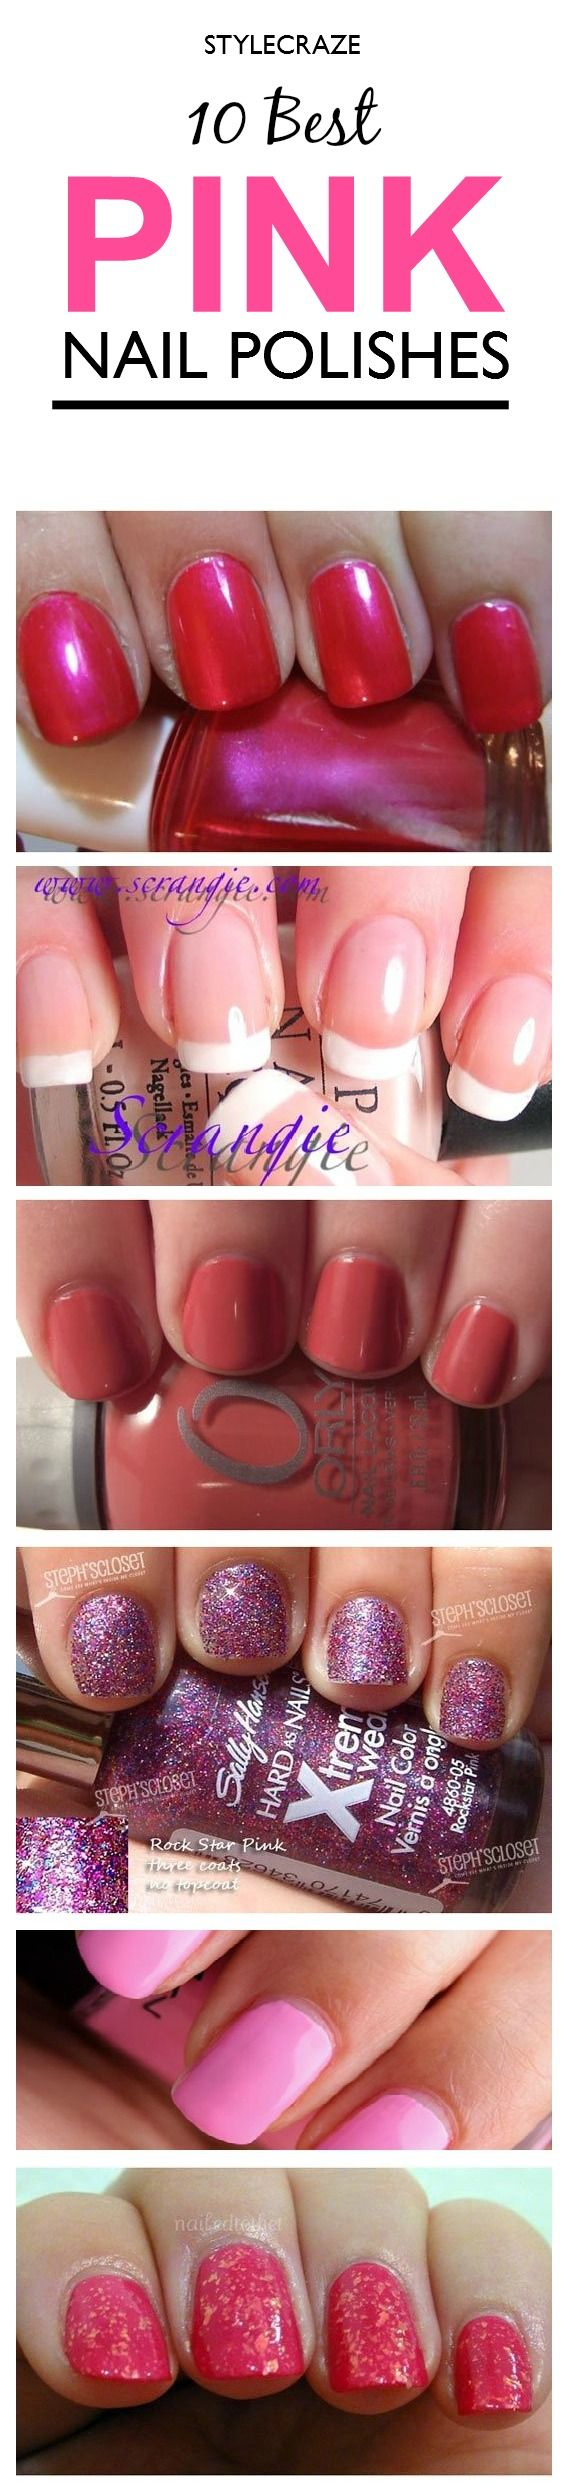 57 best Matte Nail Polishes images on Pinterest | Perfect nails ...